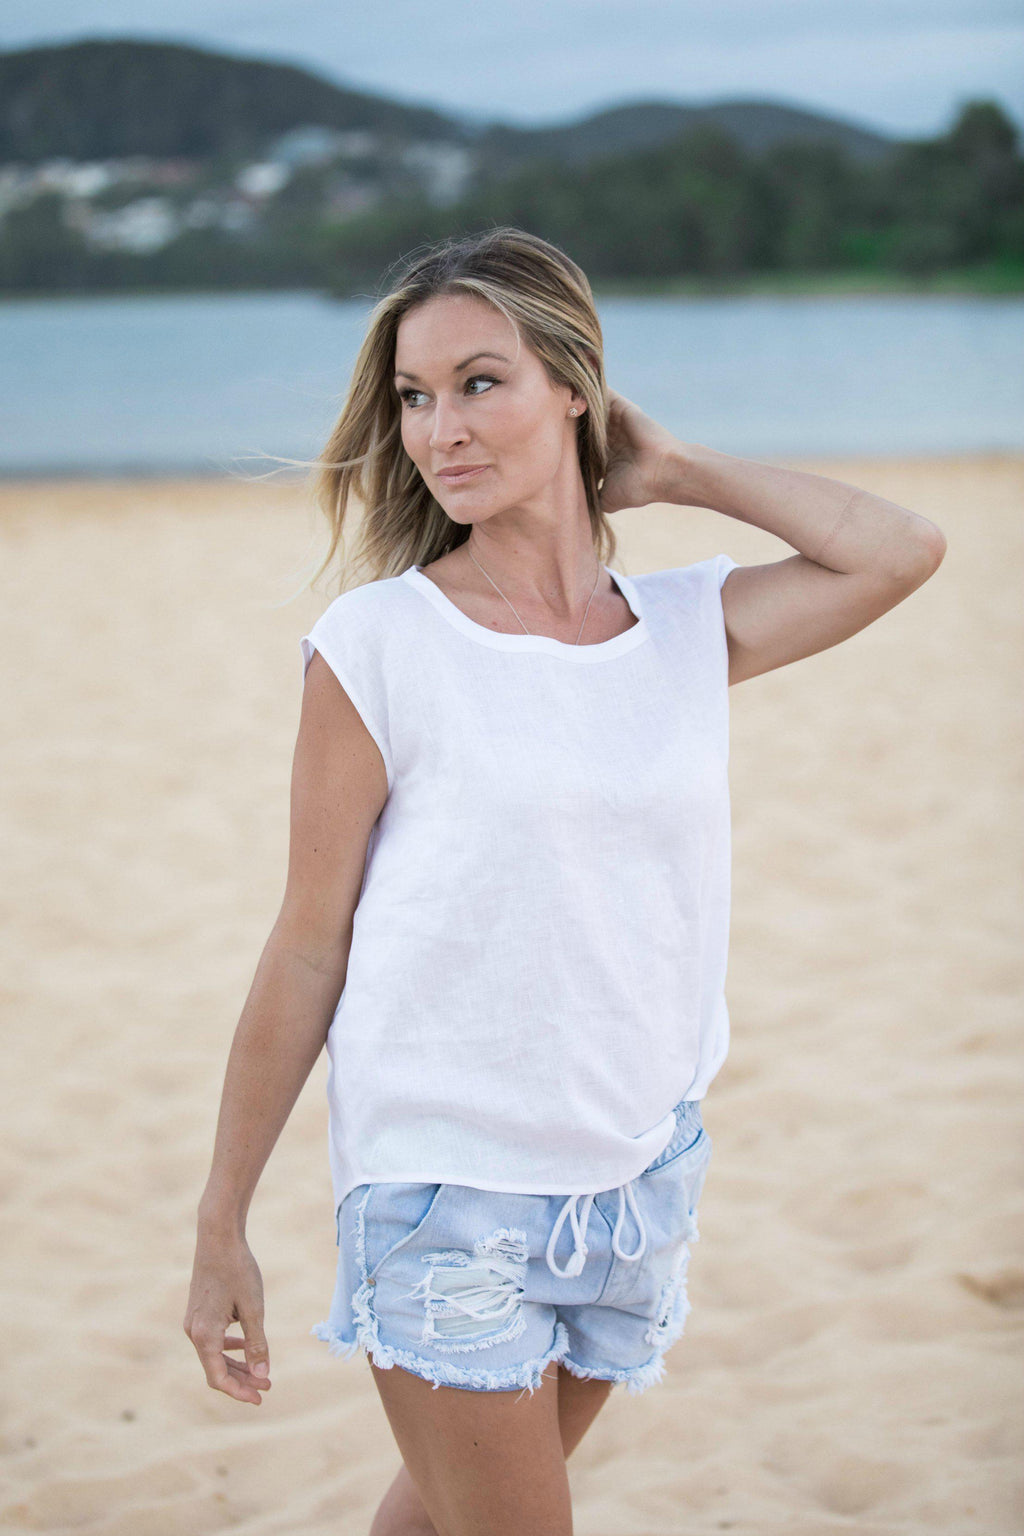 White Linen top - 100% cotton Linen Blouse - iland co.